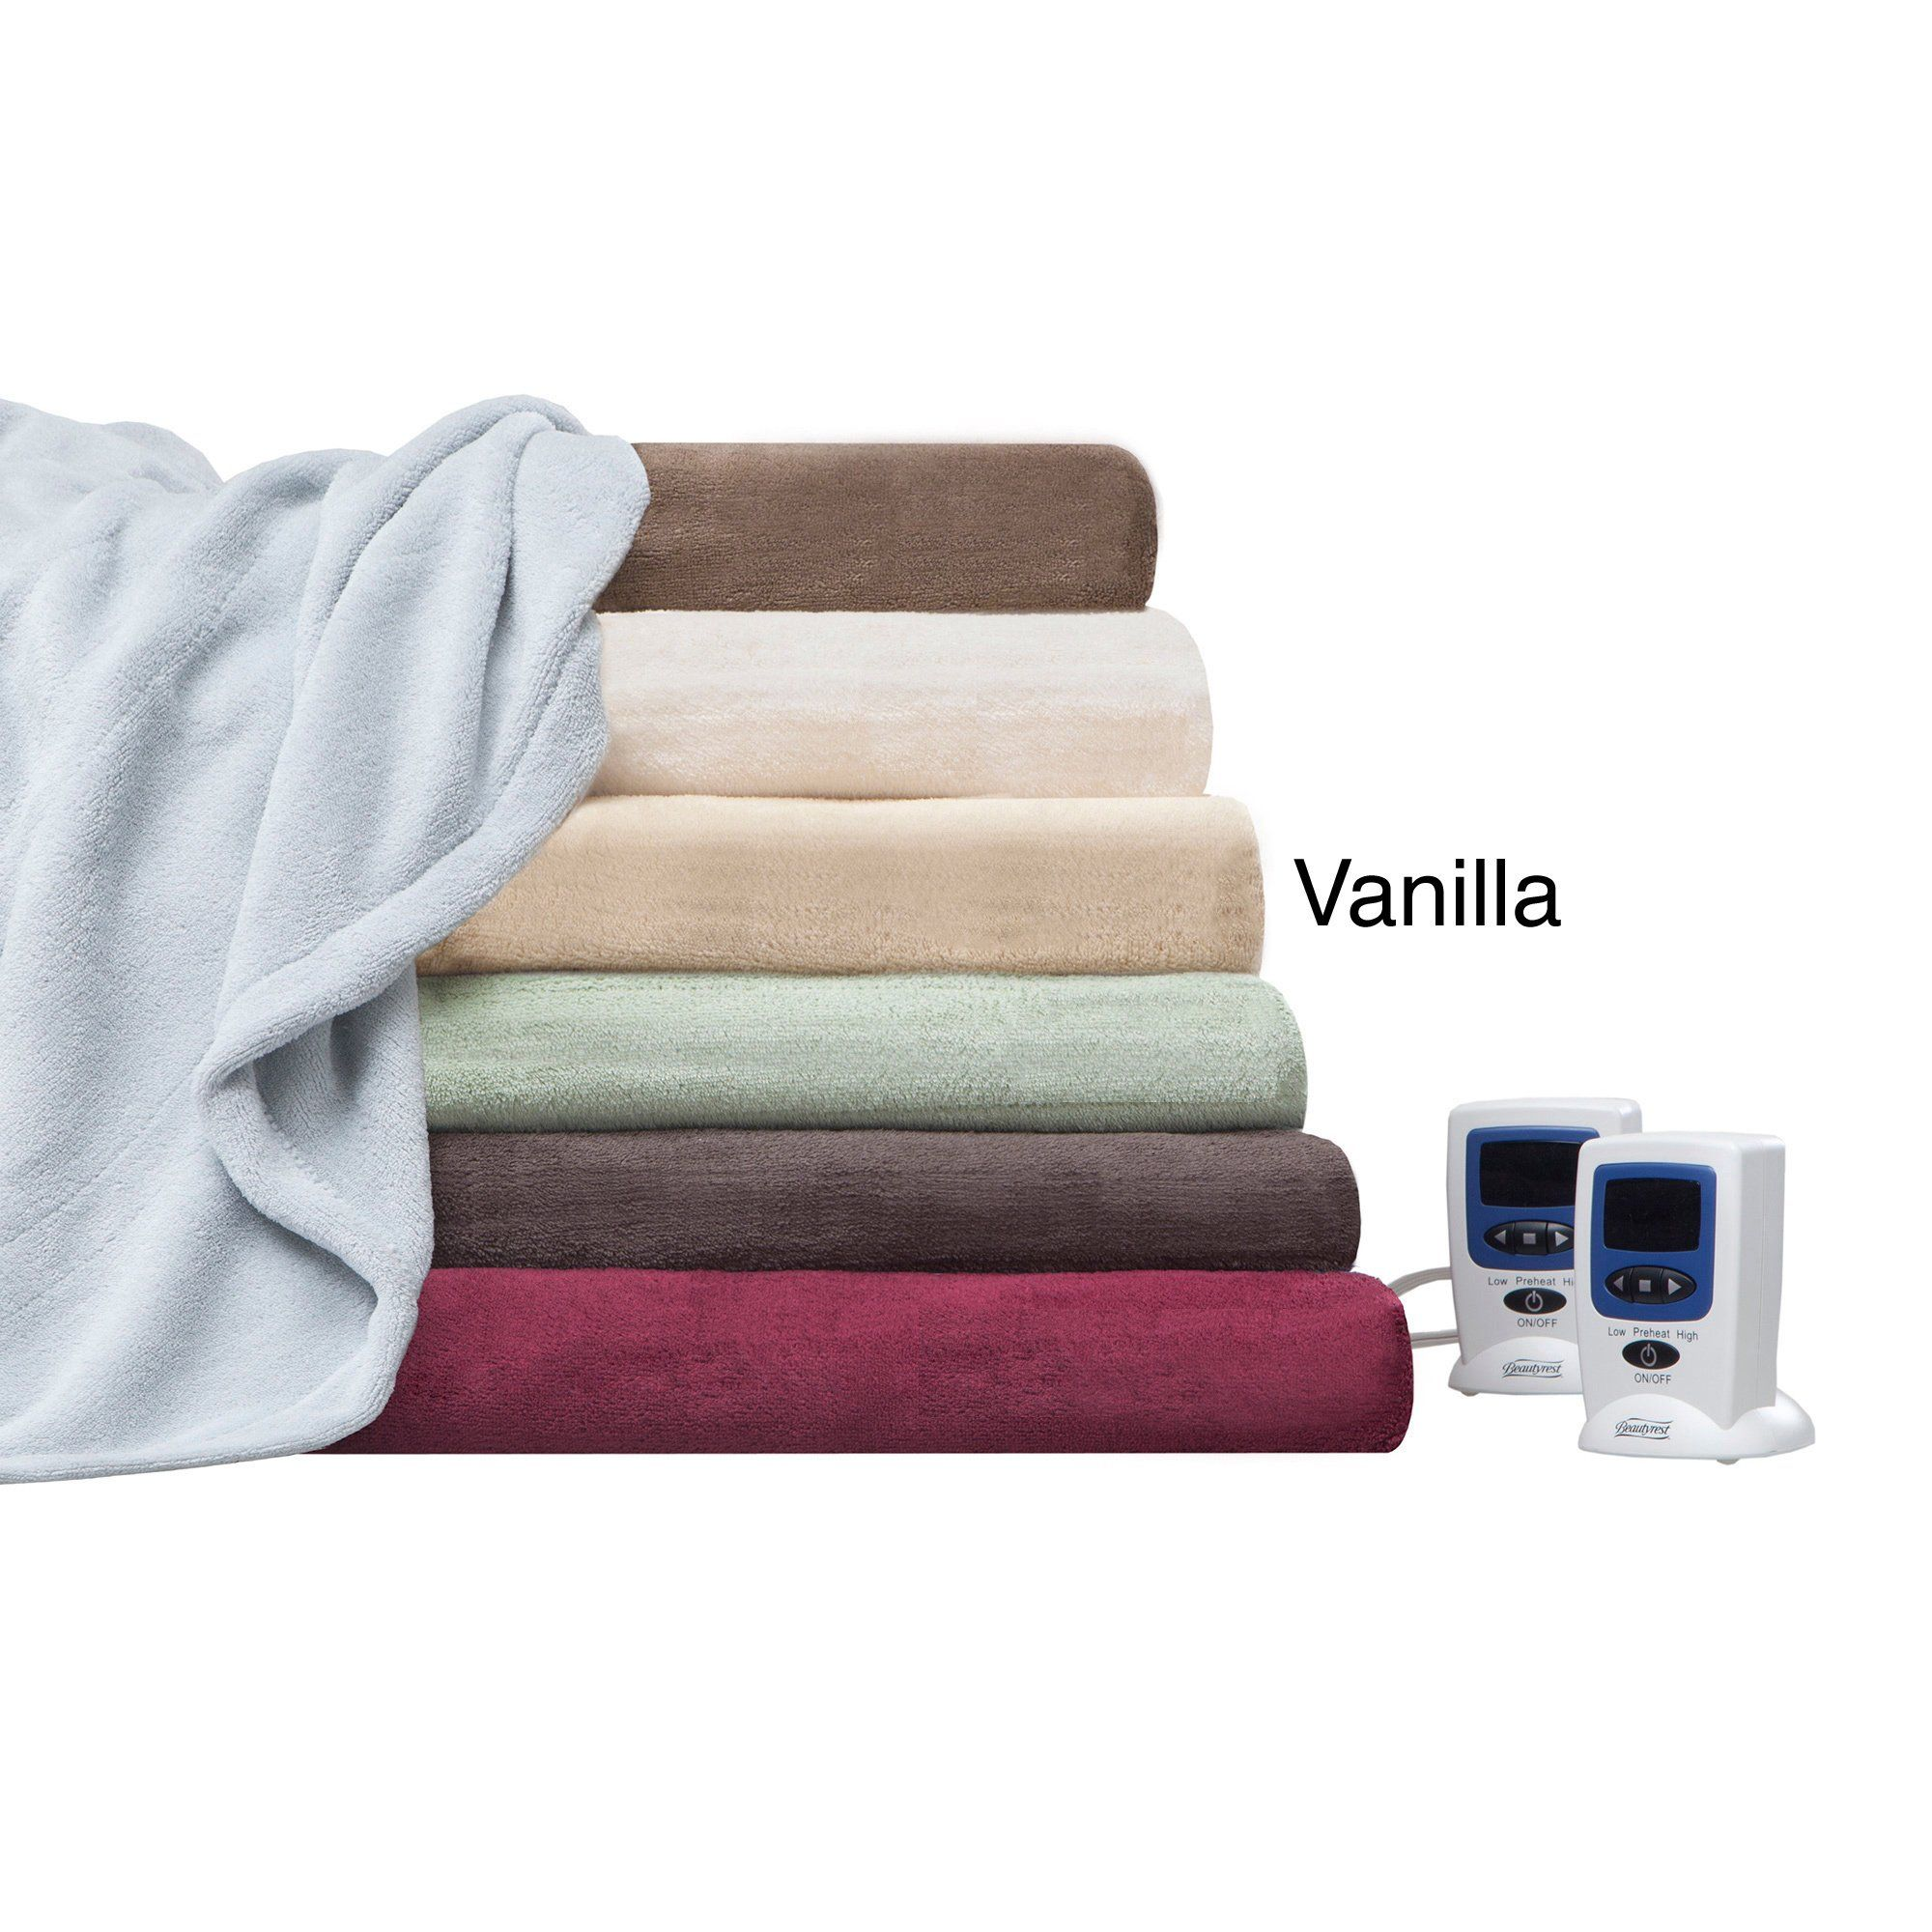 Beautyrest Cozy Plush Queen Size Vanilla (White) Heated